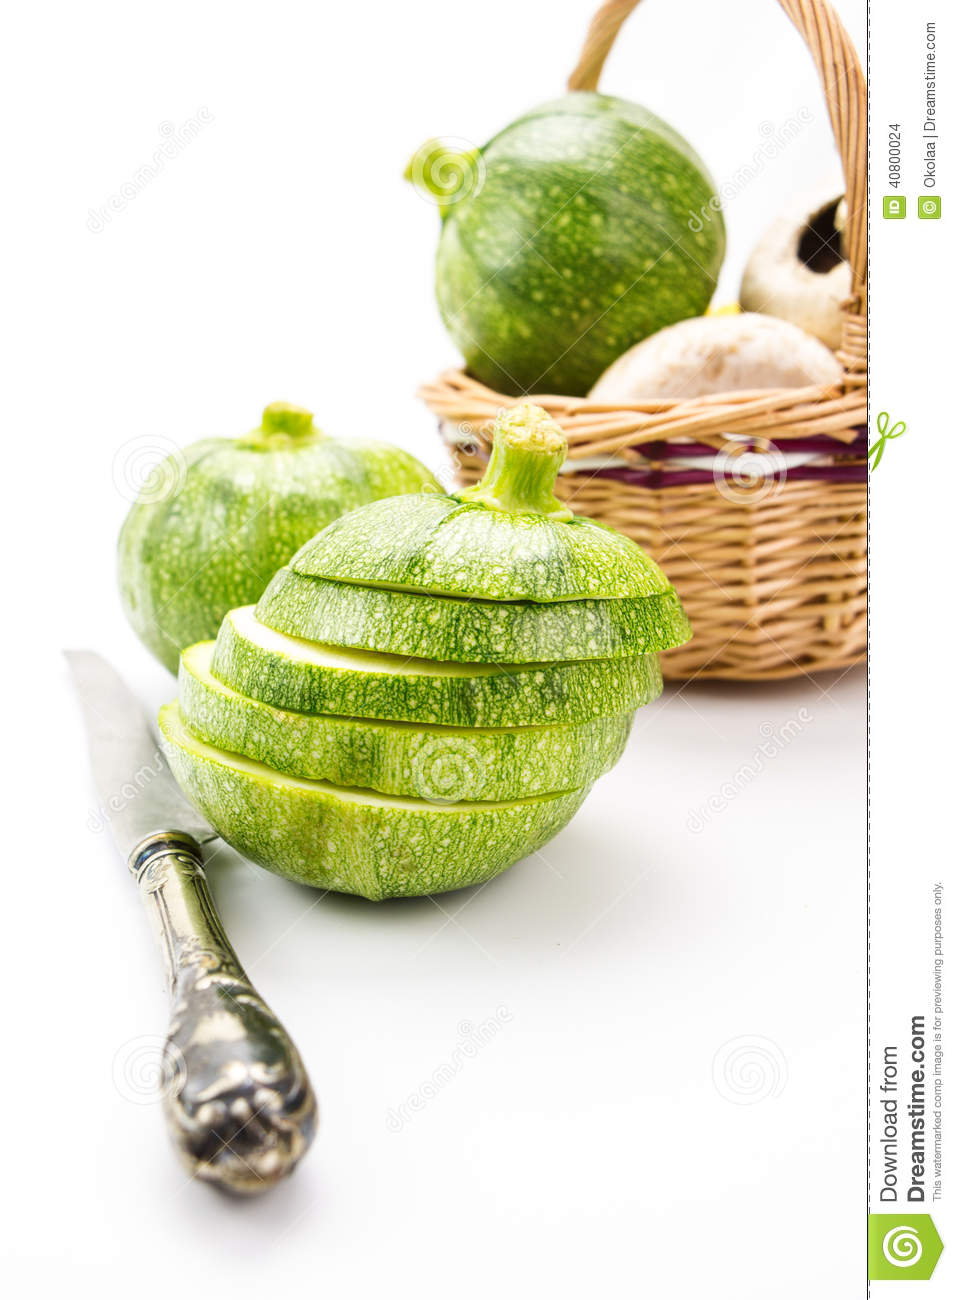 Two Round Zucchini Cut In Slices And Wicker Basket With ...